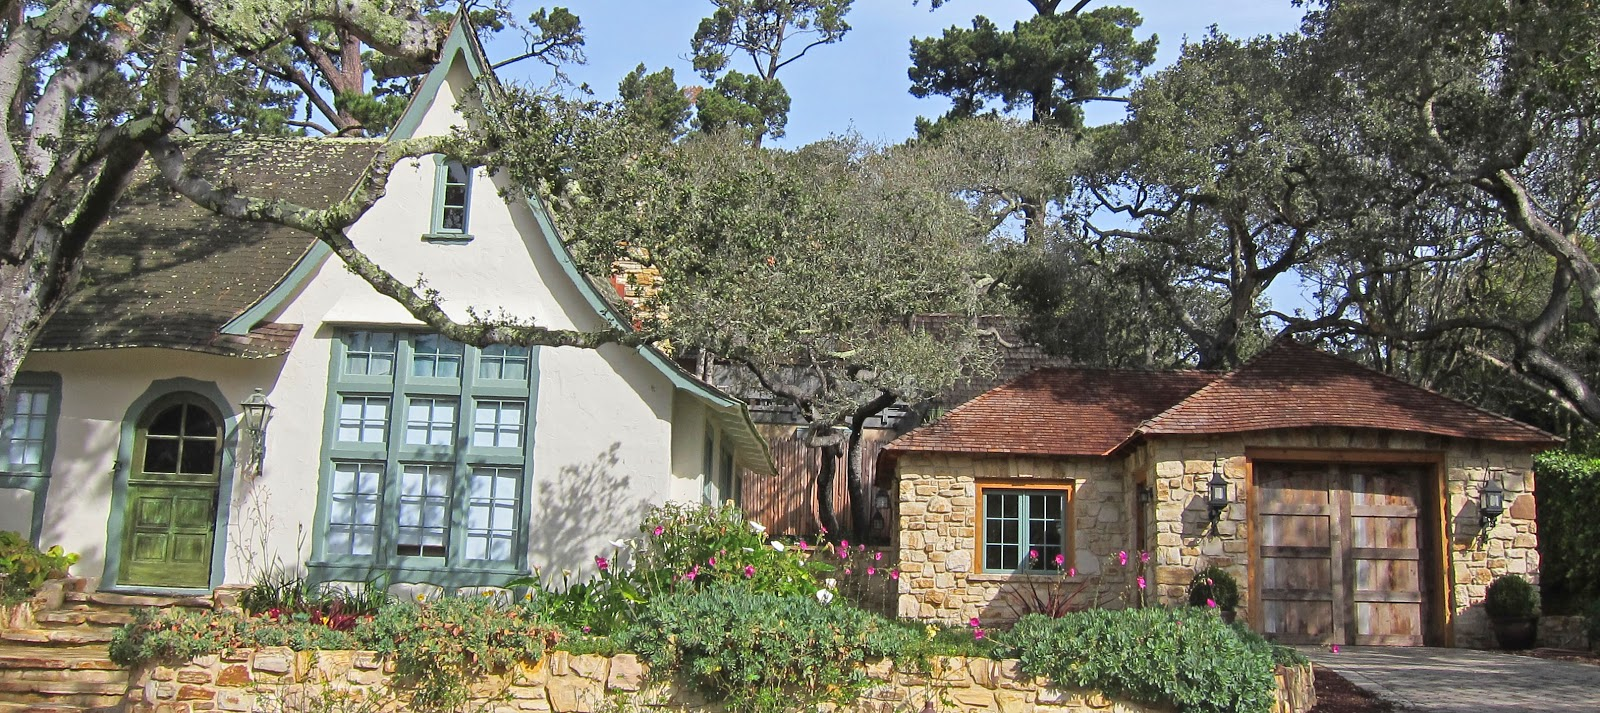 Fairy tale cottages of hugh comstock obers now known as for Detached garage utah